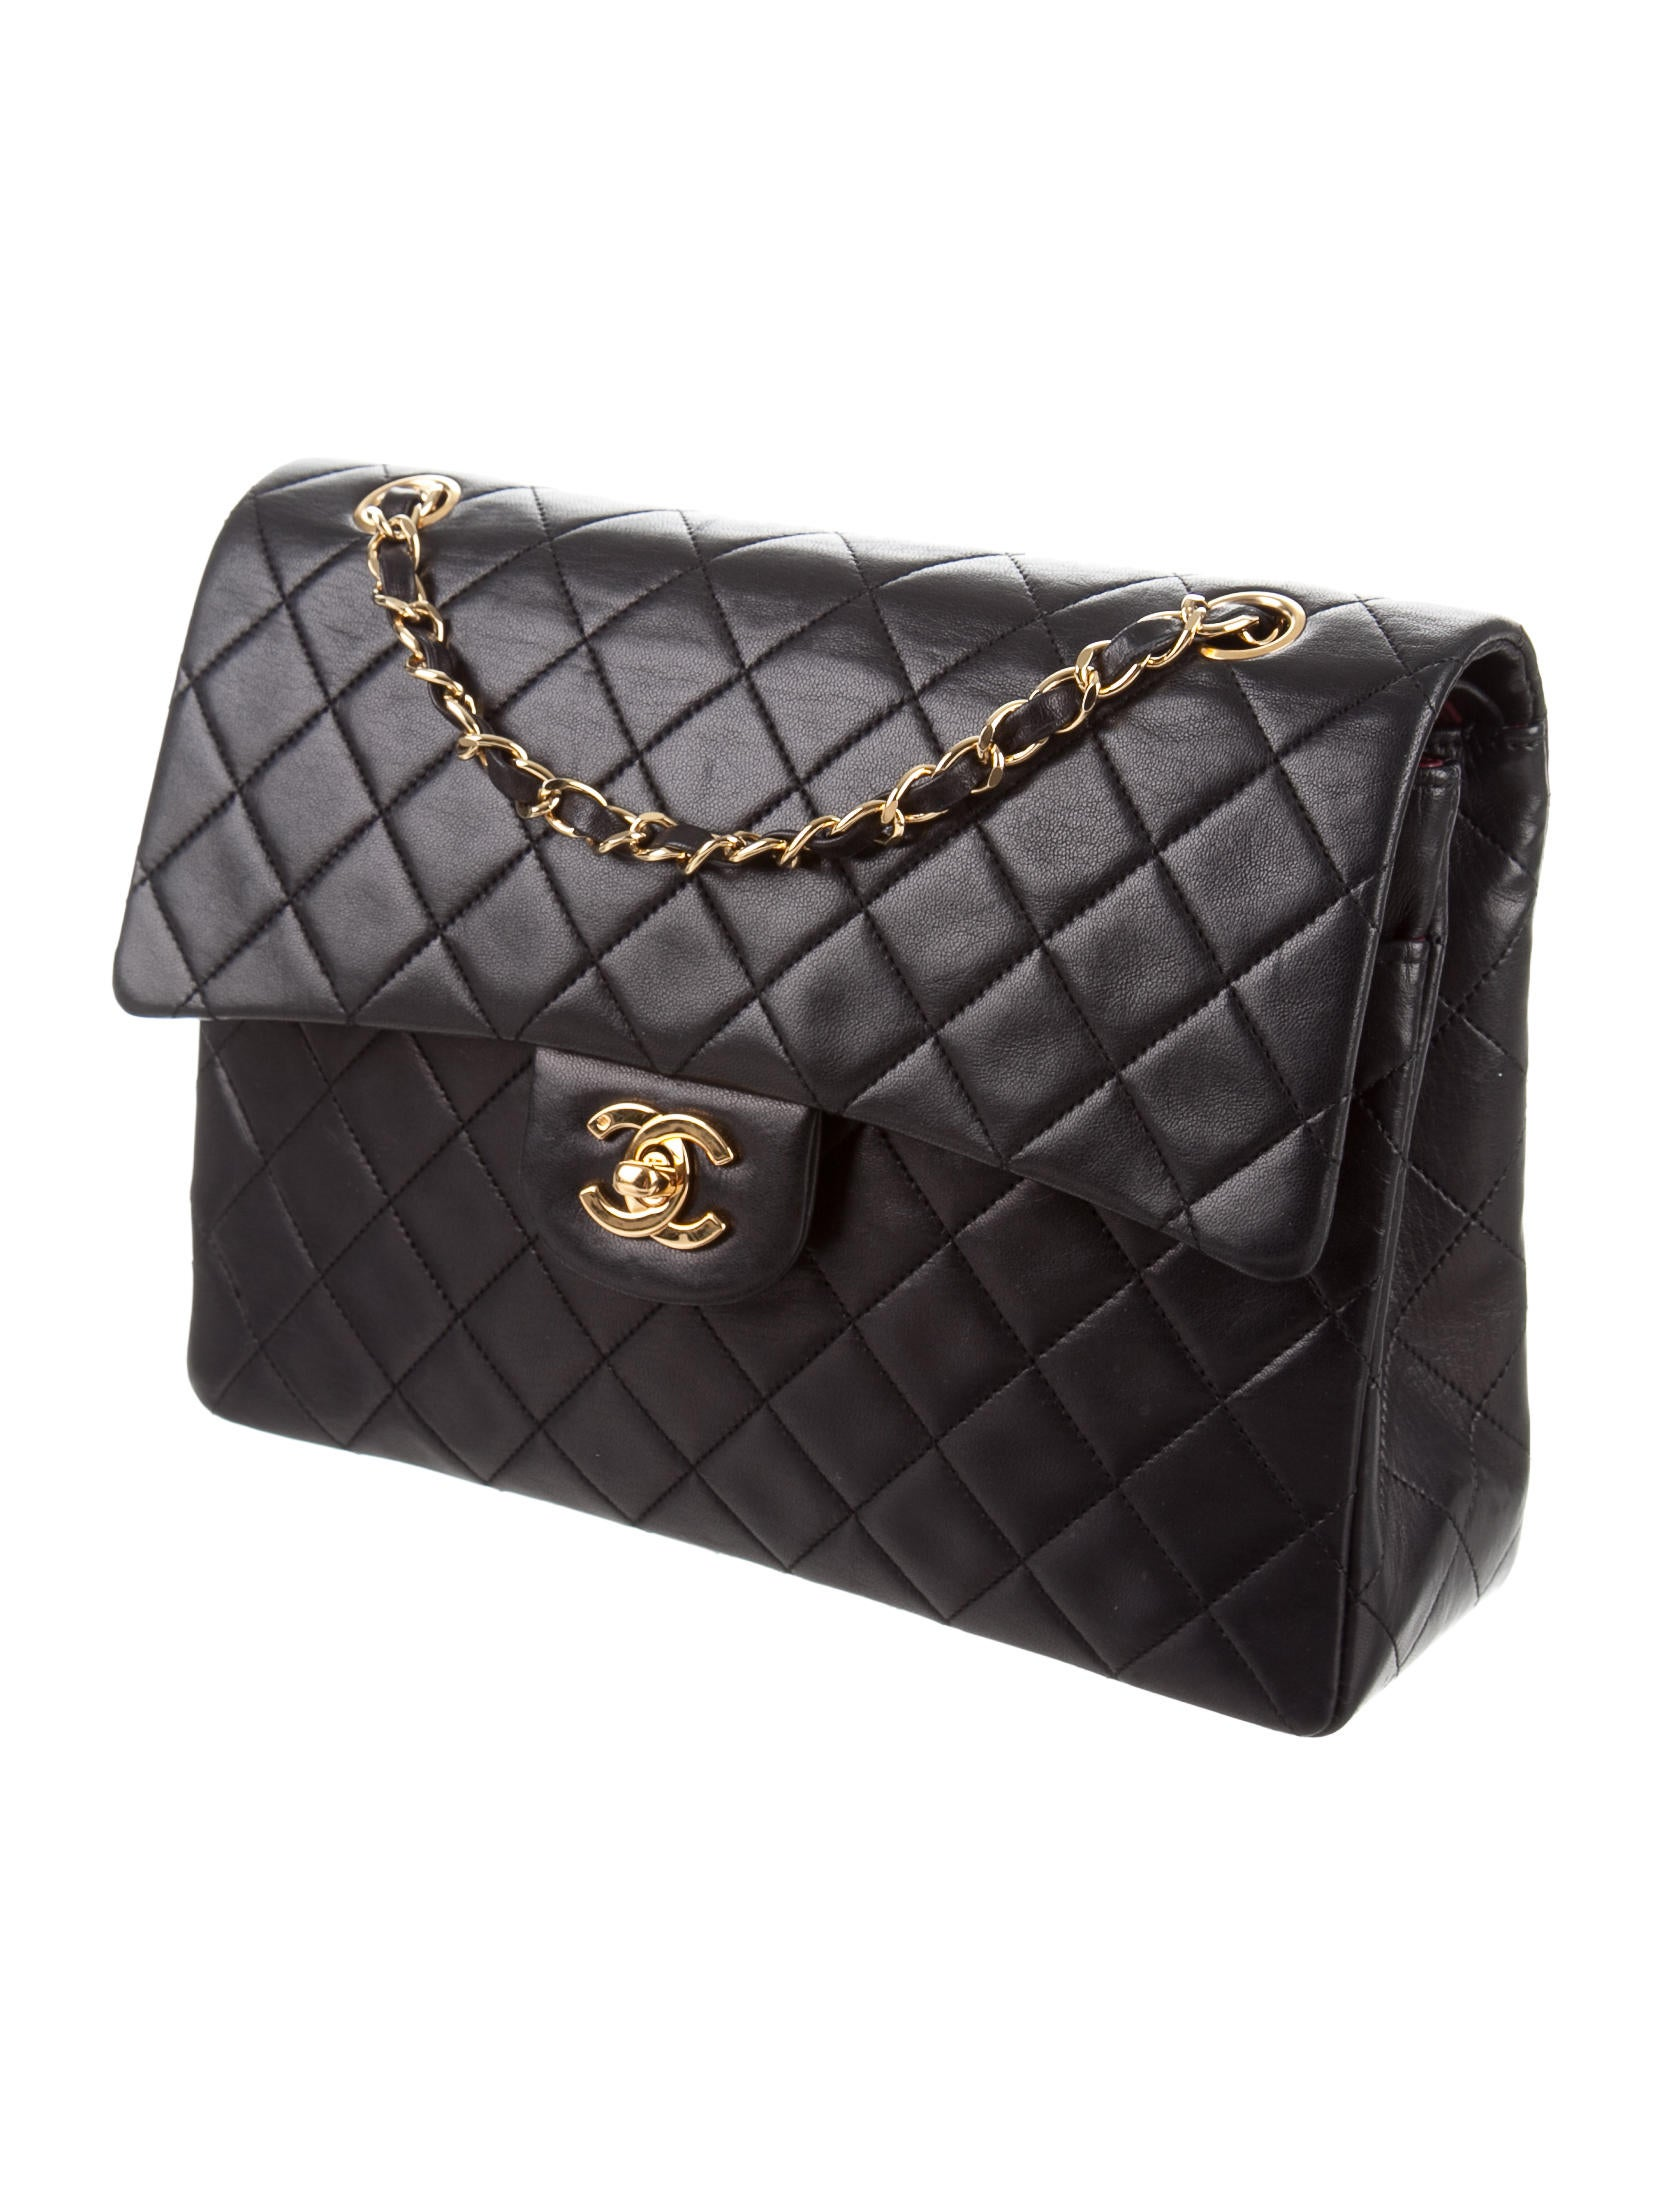 e2ef904b86ef54 Chanel Classic Quilted Bag | Stanford Center for Opportunity Policy ...